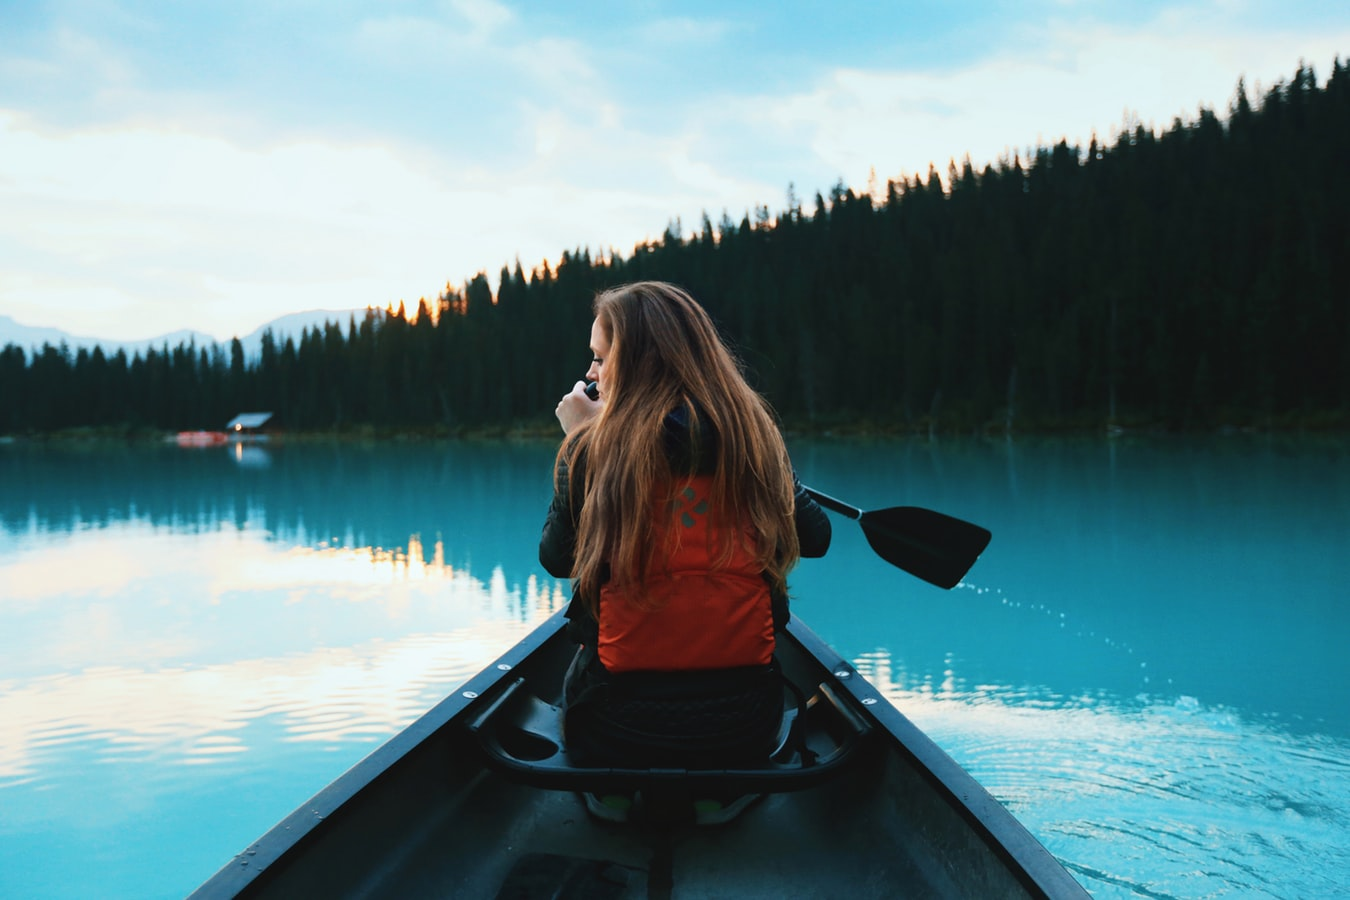 17 important reasons to start traveling right away